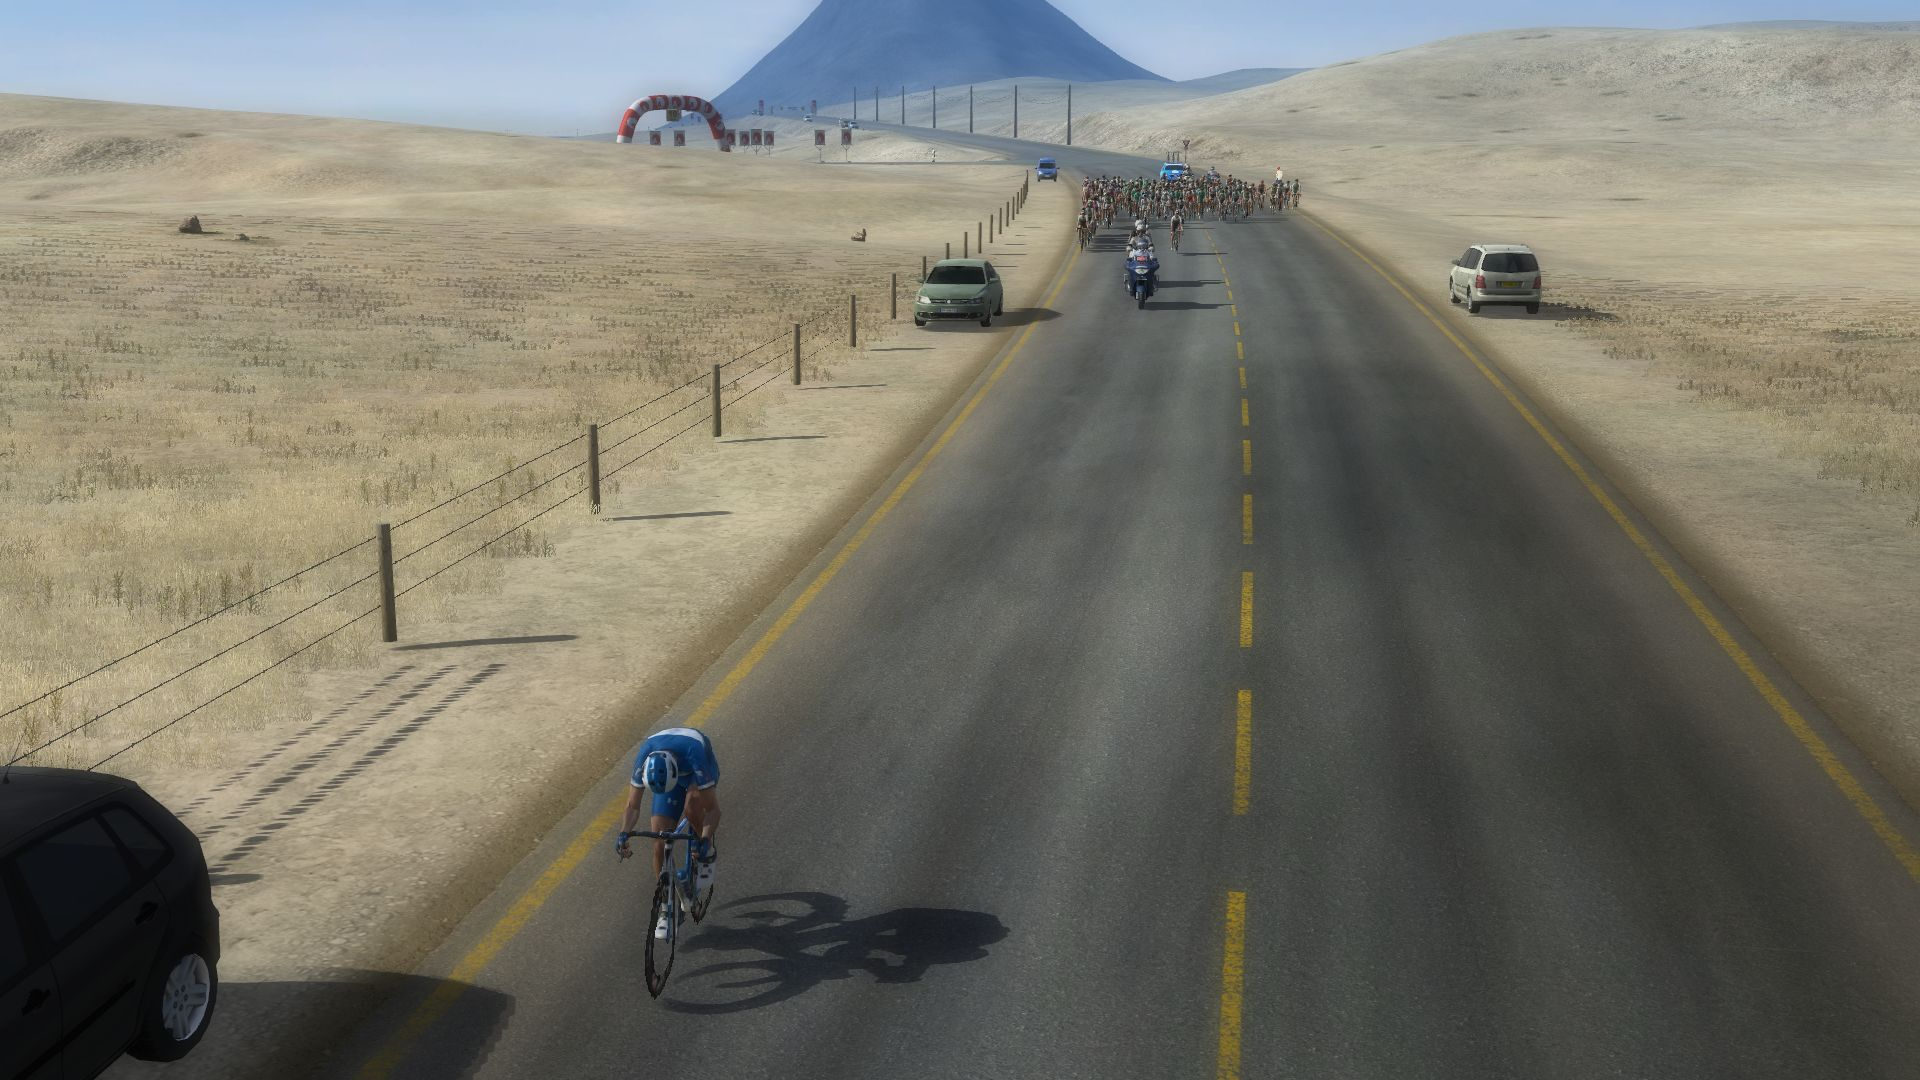 pcmdaily.com/images/mg/2019/Races/C2HC/Eritrea/TOES1%207.jpg